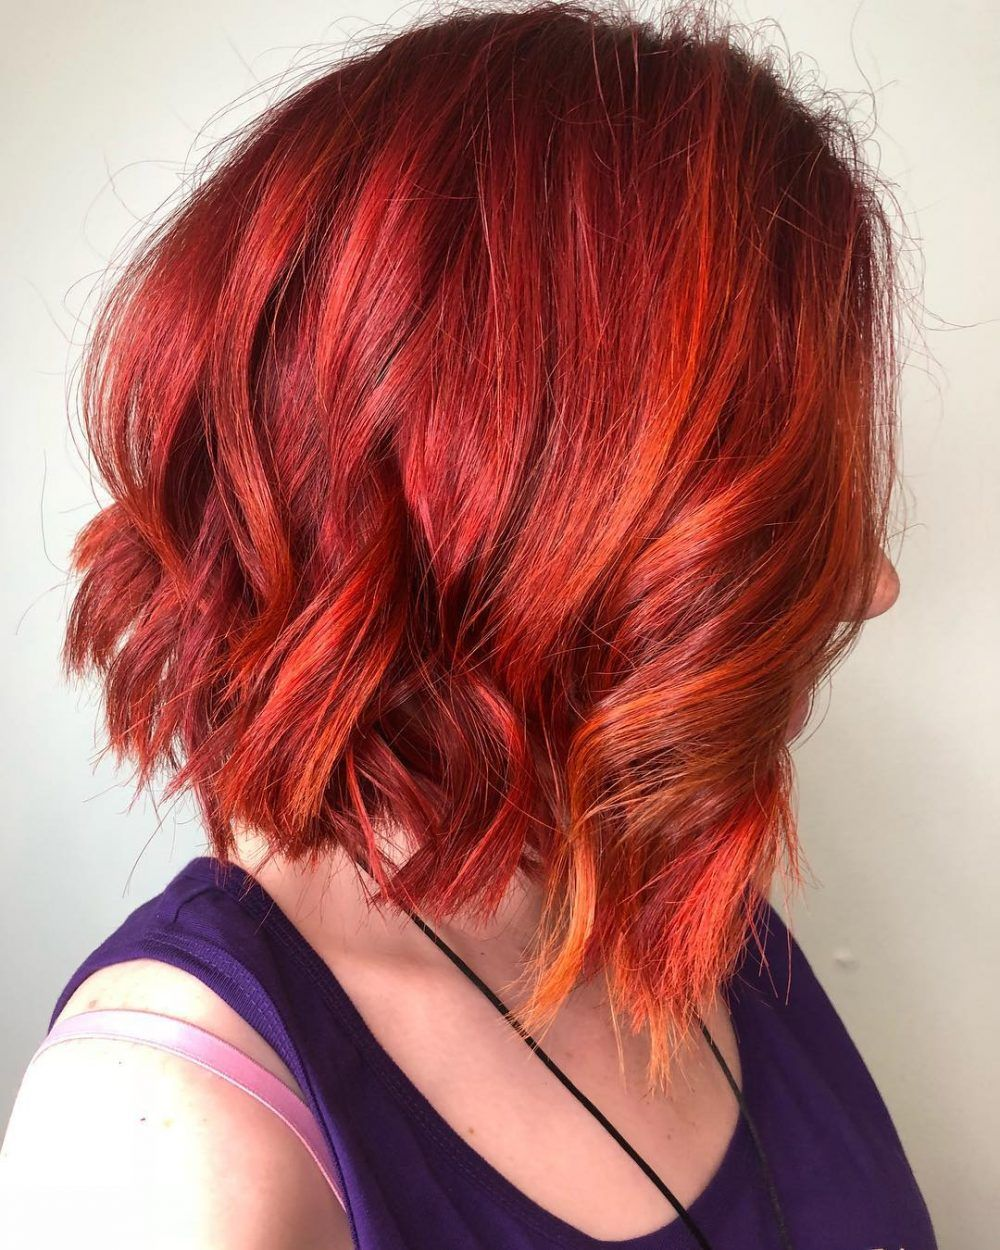 chic short bob hairstyles and haircuts for women in